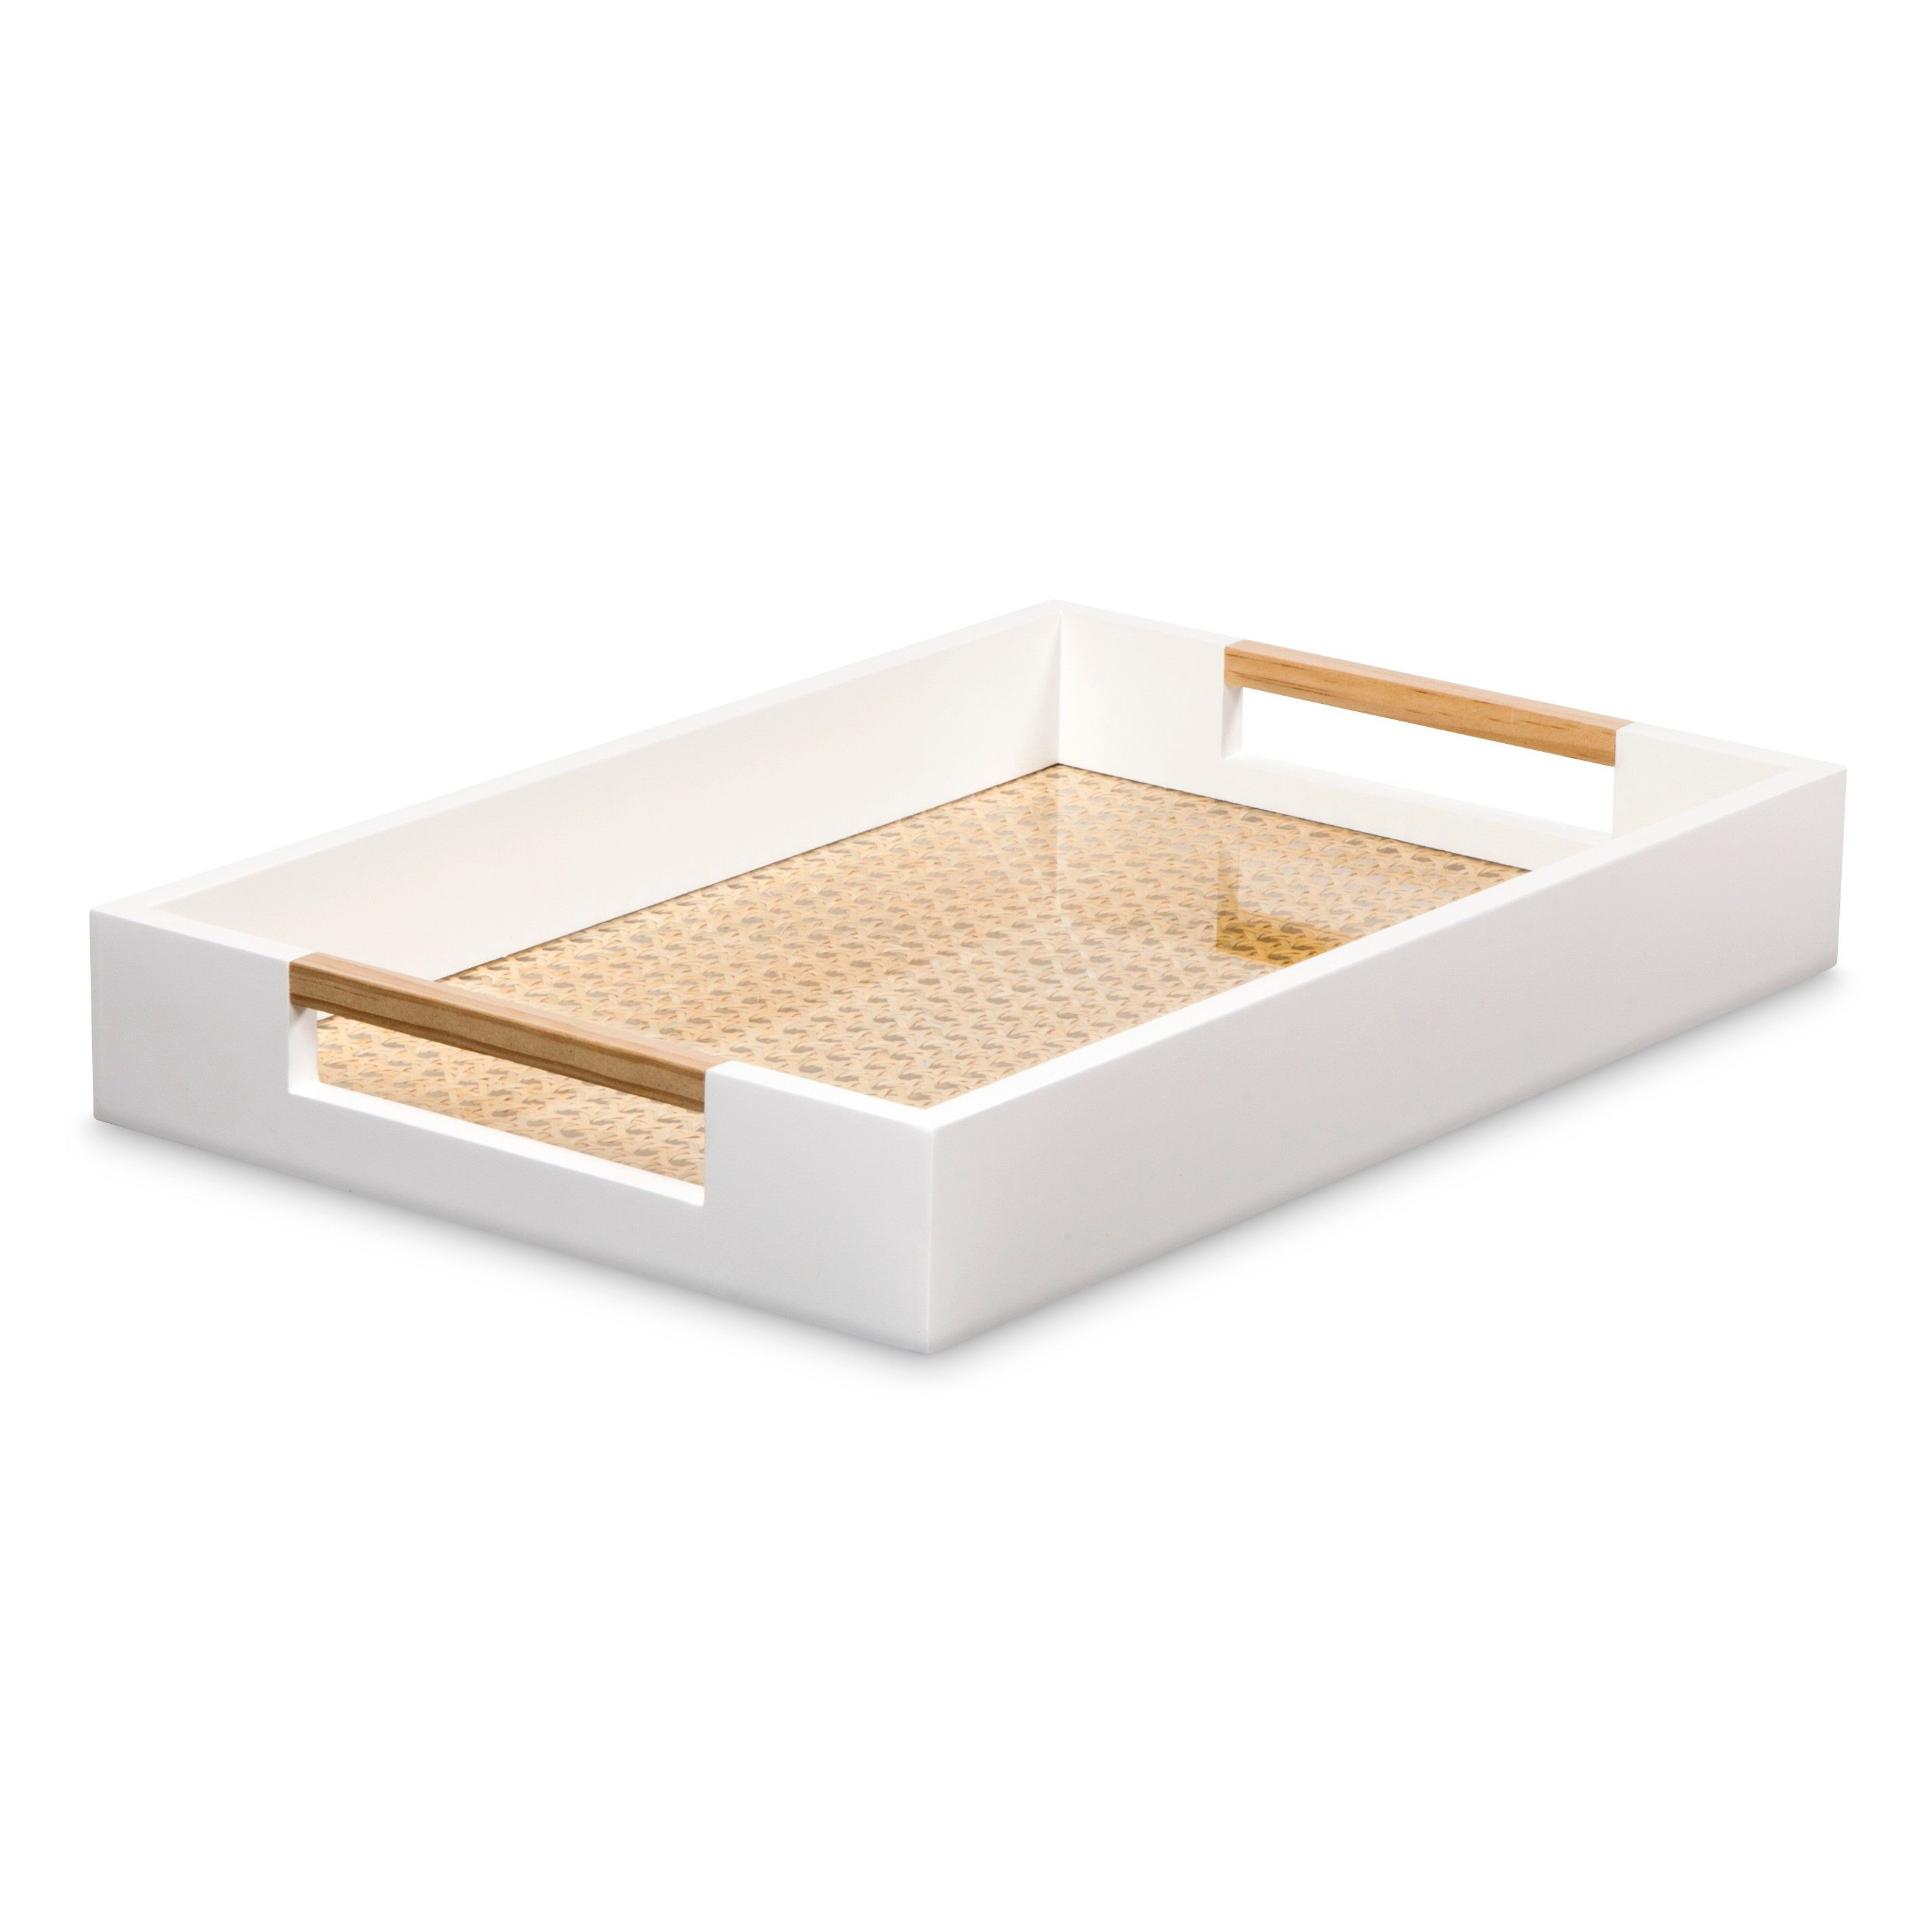 Decorative Trays Threshold™ Decorative Tray With Cane Detail  White  Target  Bed